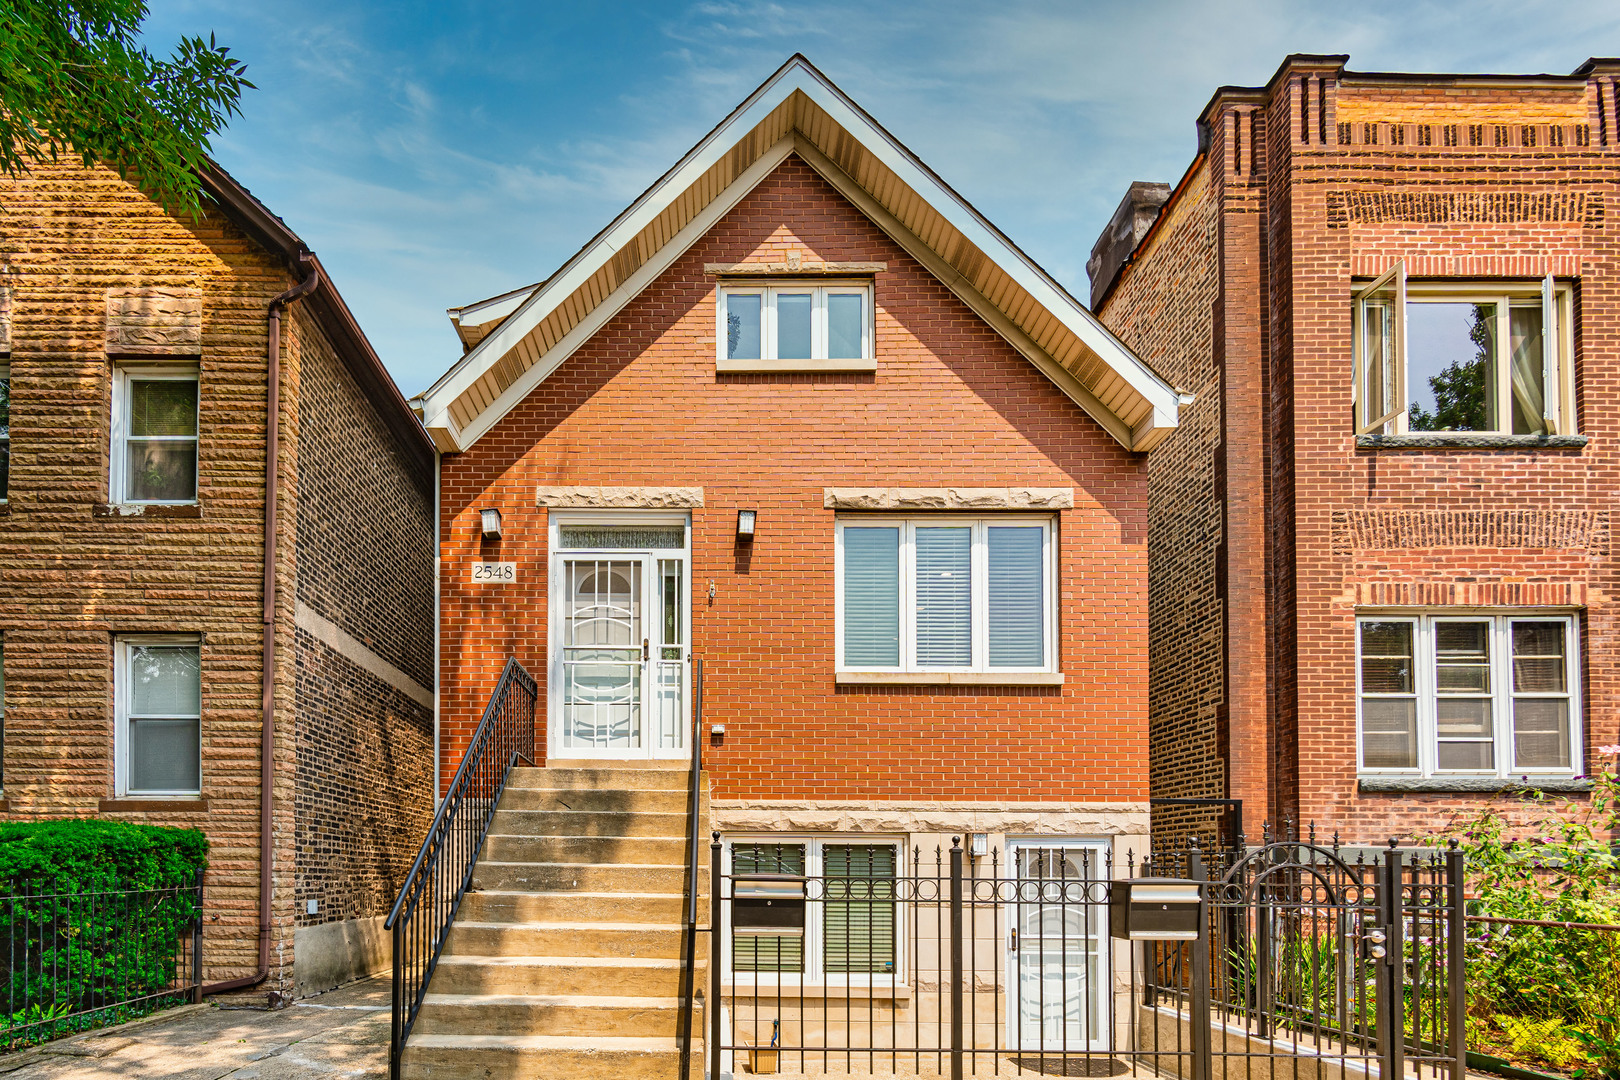 Sunny, updated property with a duplex up owner's unit and a high garden apt in Ukrainian Village/Smi